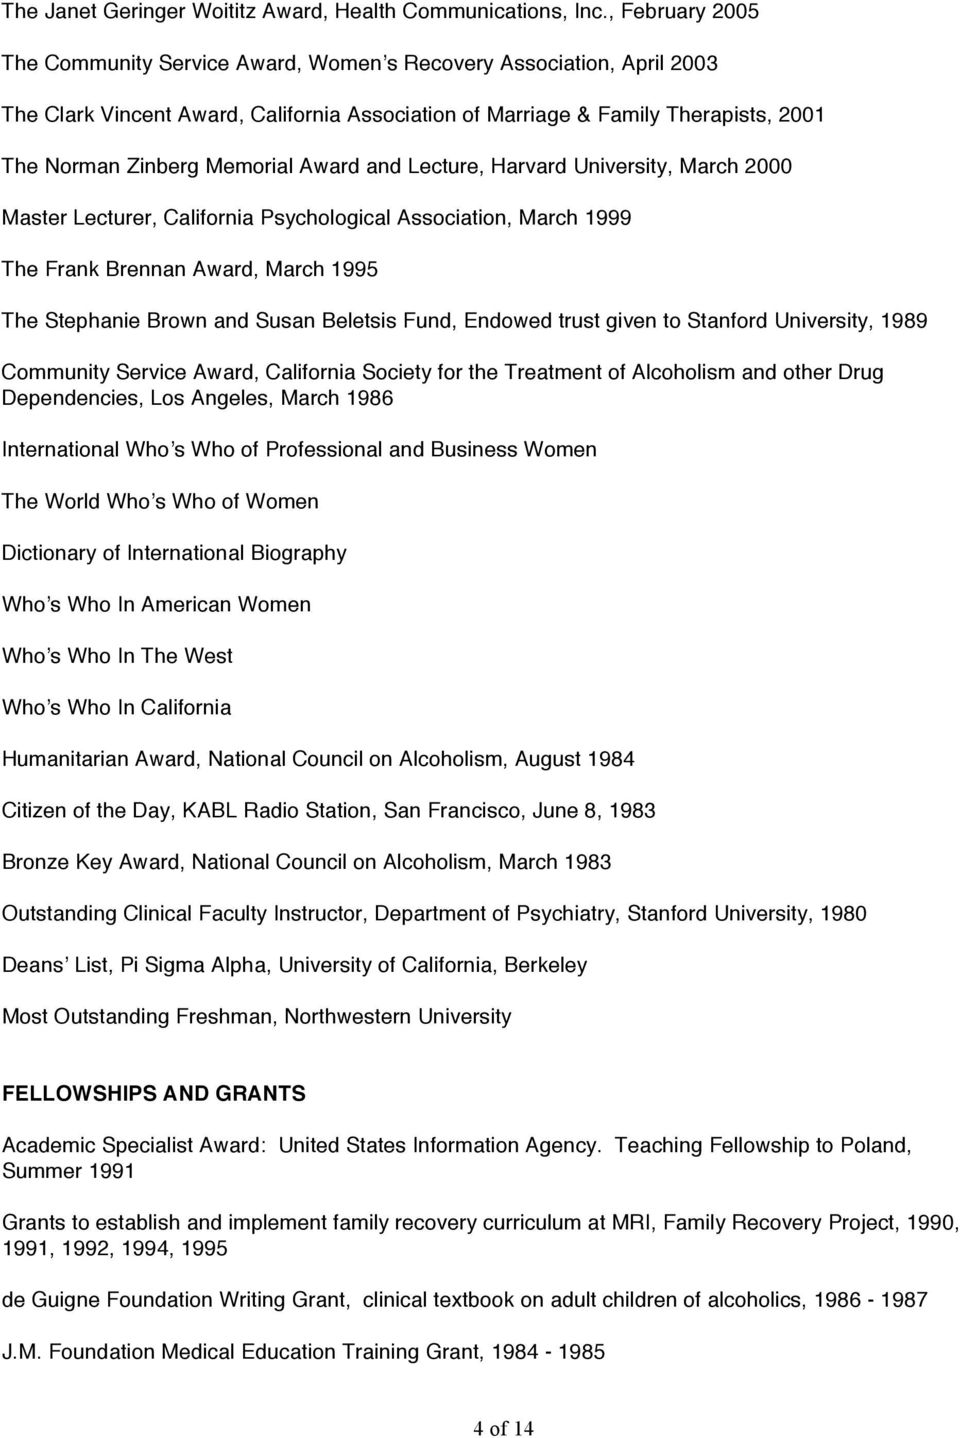 Award and Lecture, Harvard University, March 2000 Master Lecturer, California Psychological Association, March 1999 The Frank Brennan Award, March 1995 The Stephanie Brown and Susan Beletsis Fund,